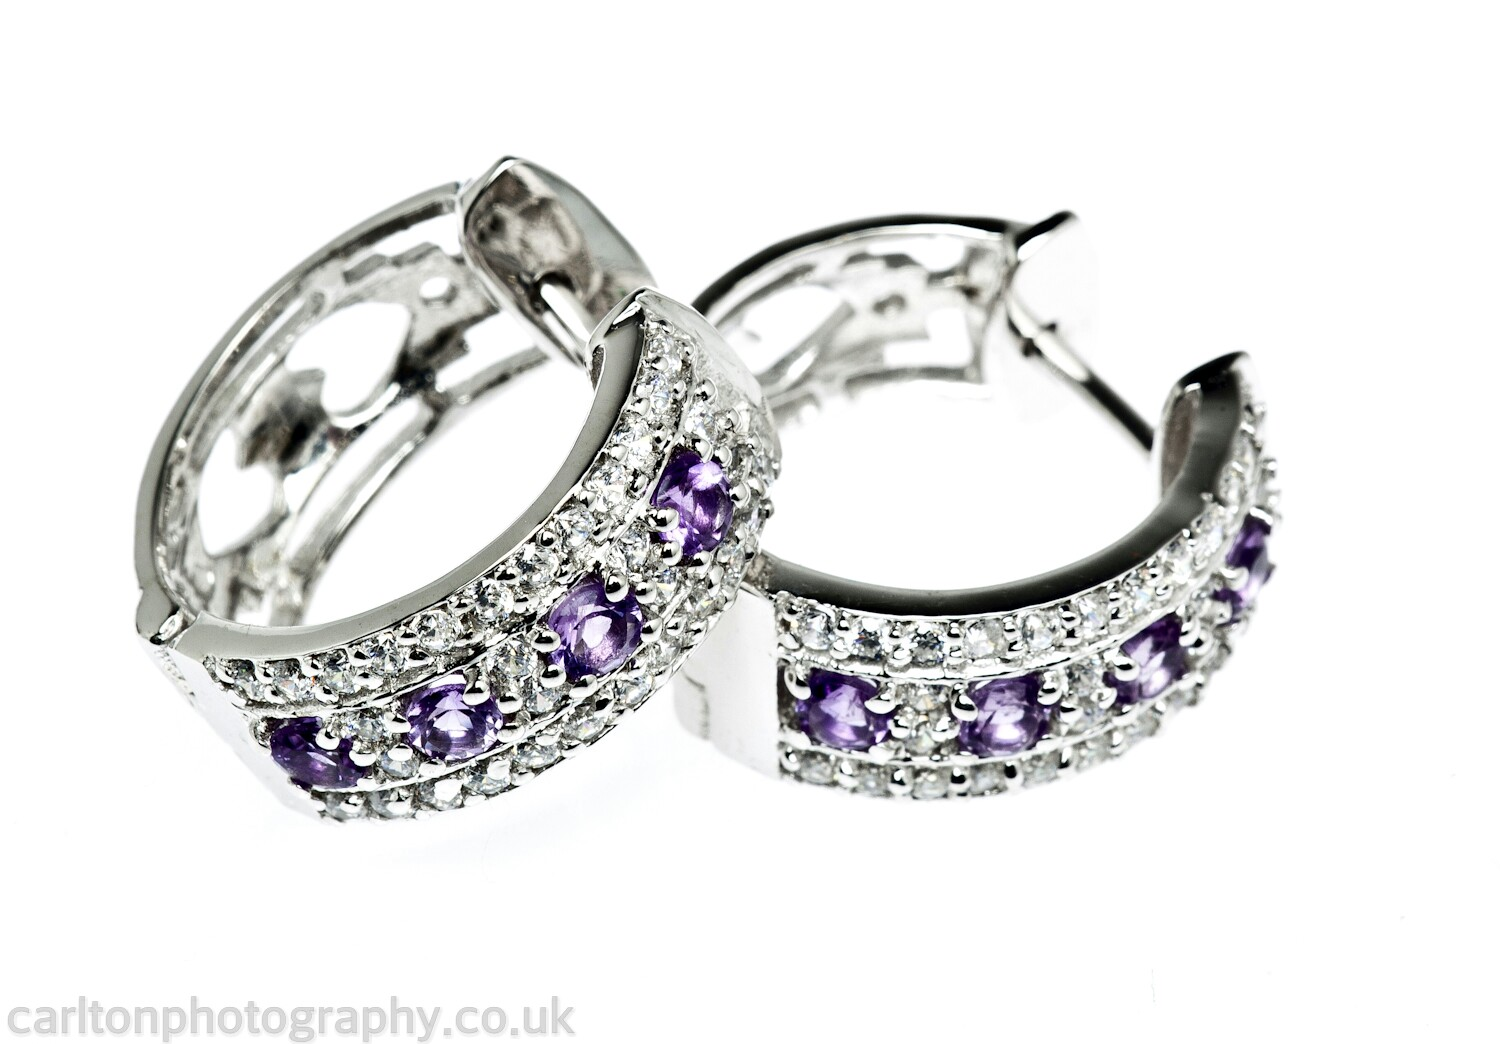 jewellery and product photography in manchester and cheshire